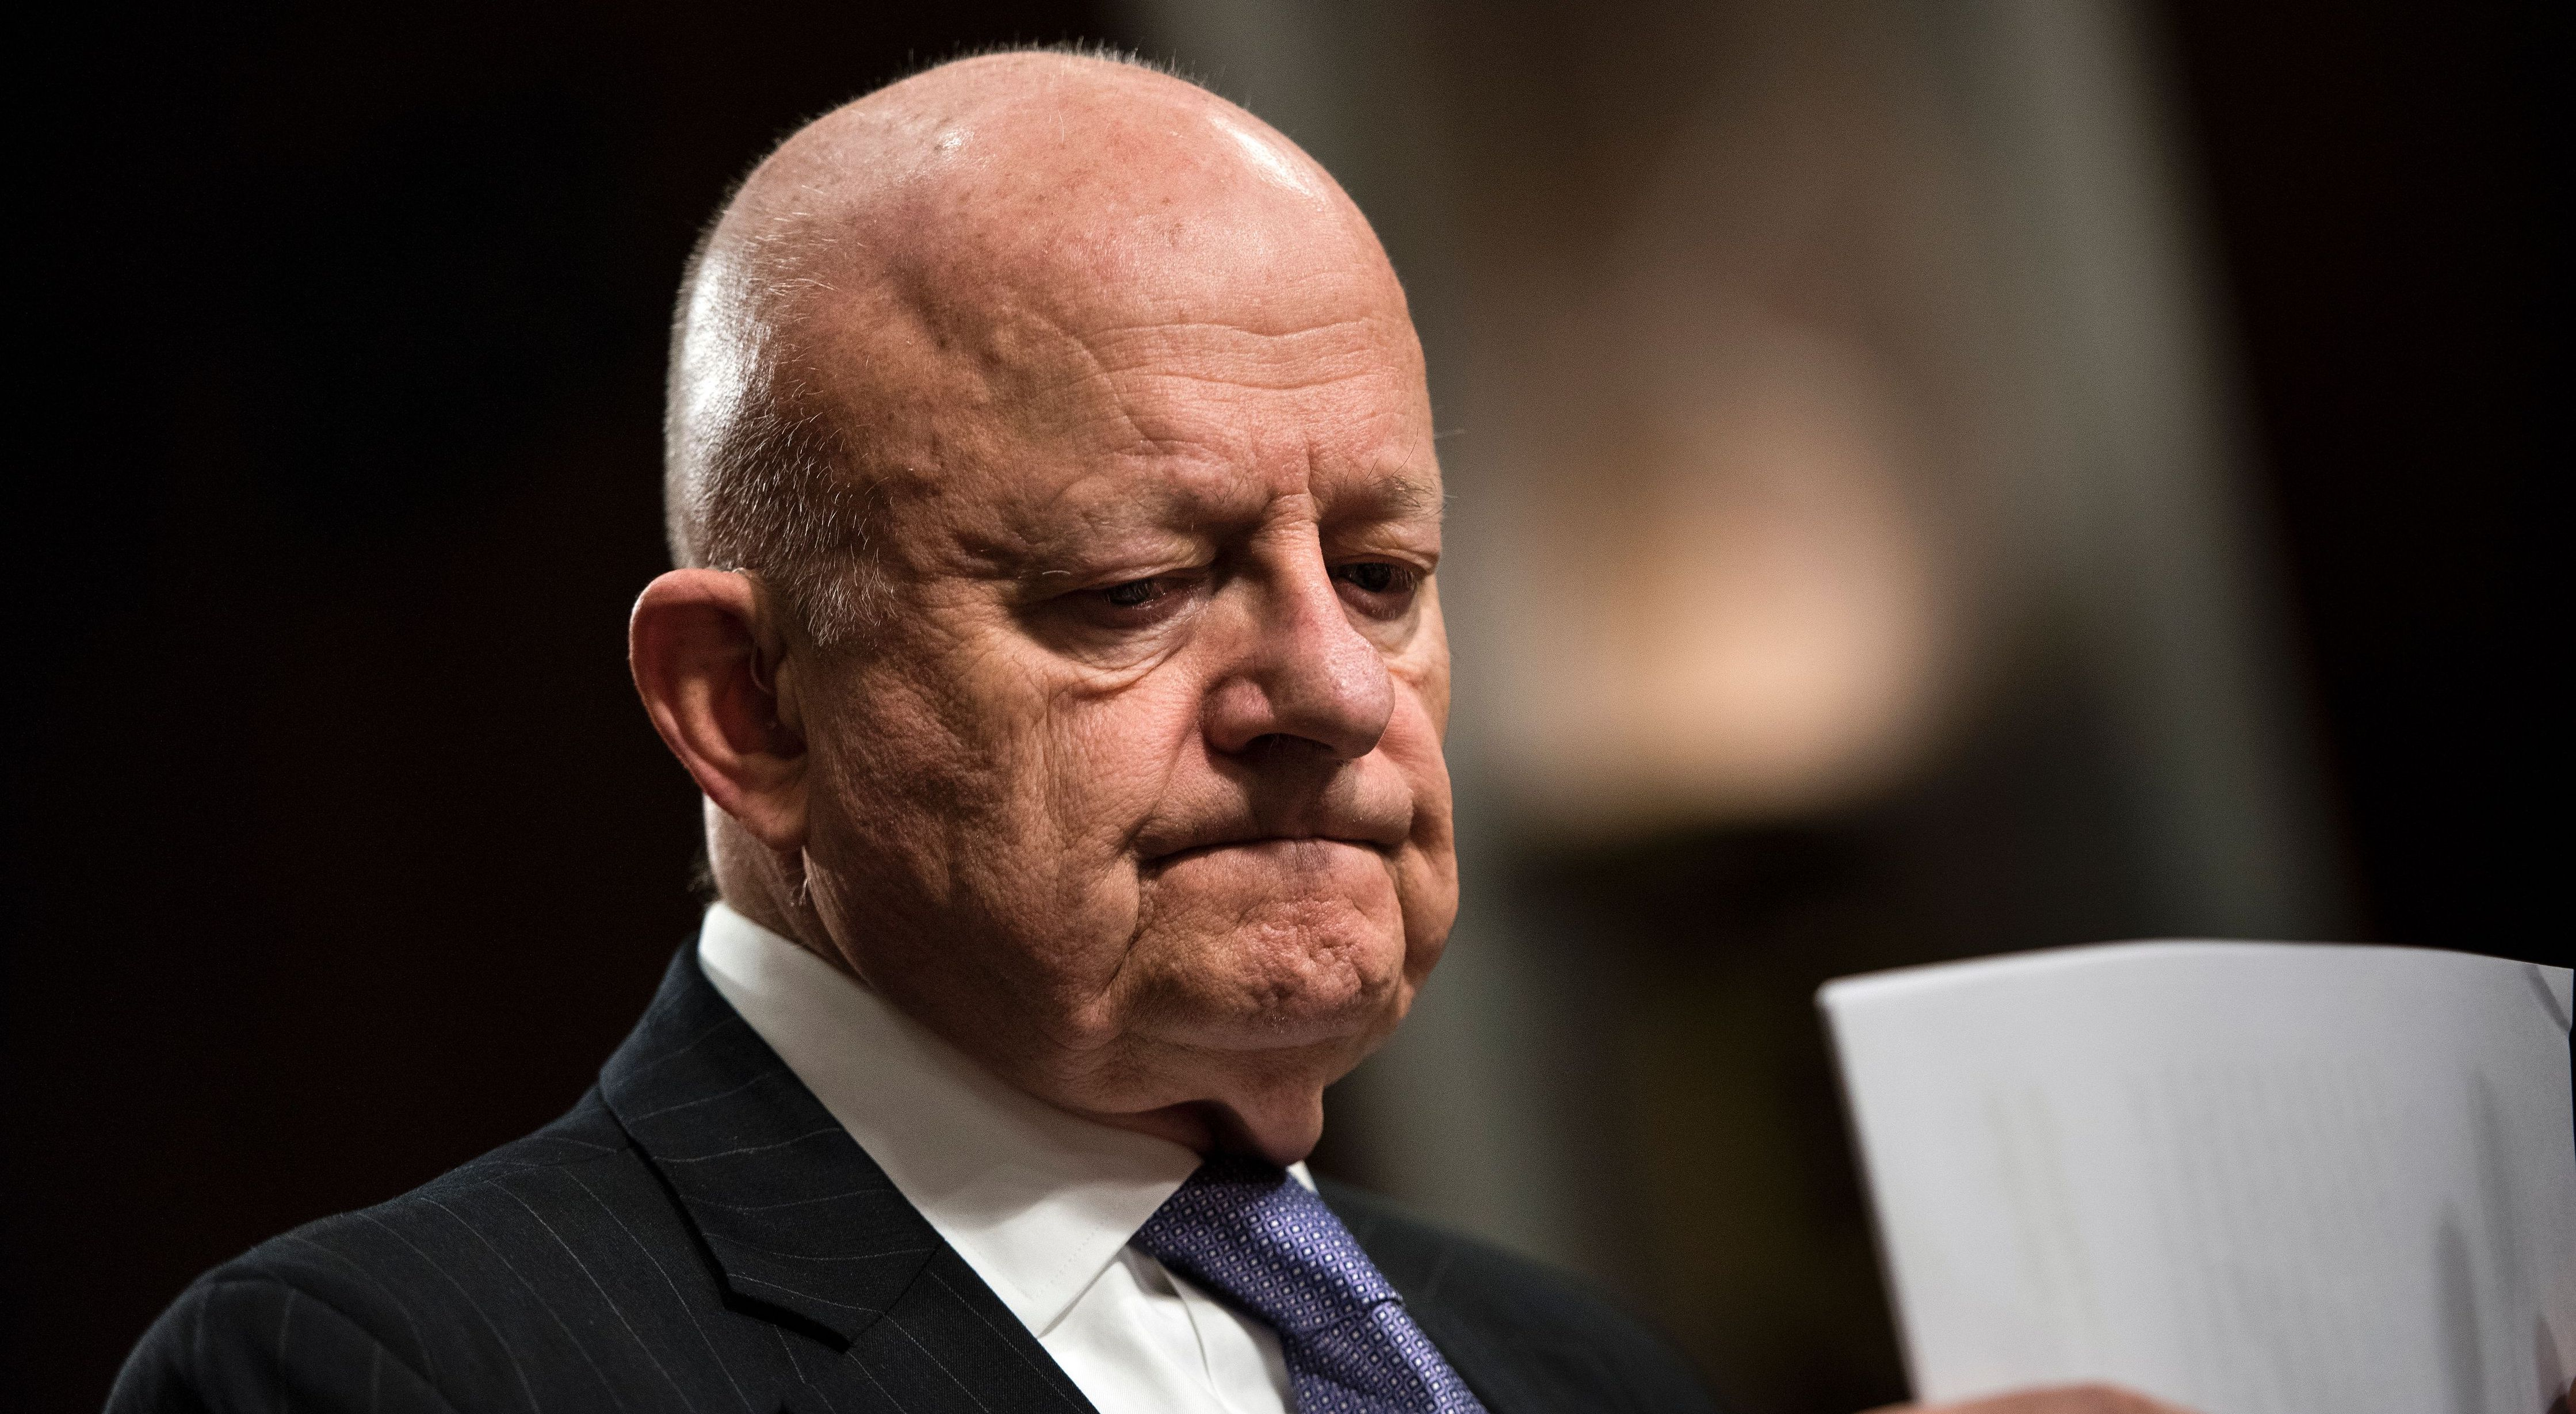 Rep Darrell Issa other lawmakers say Clapper lied under oath